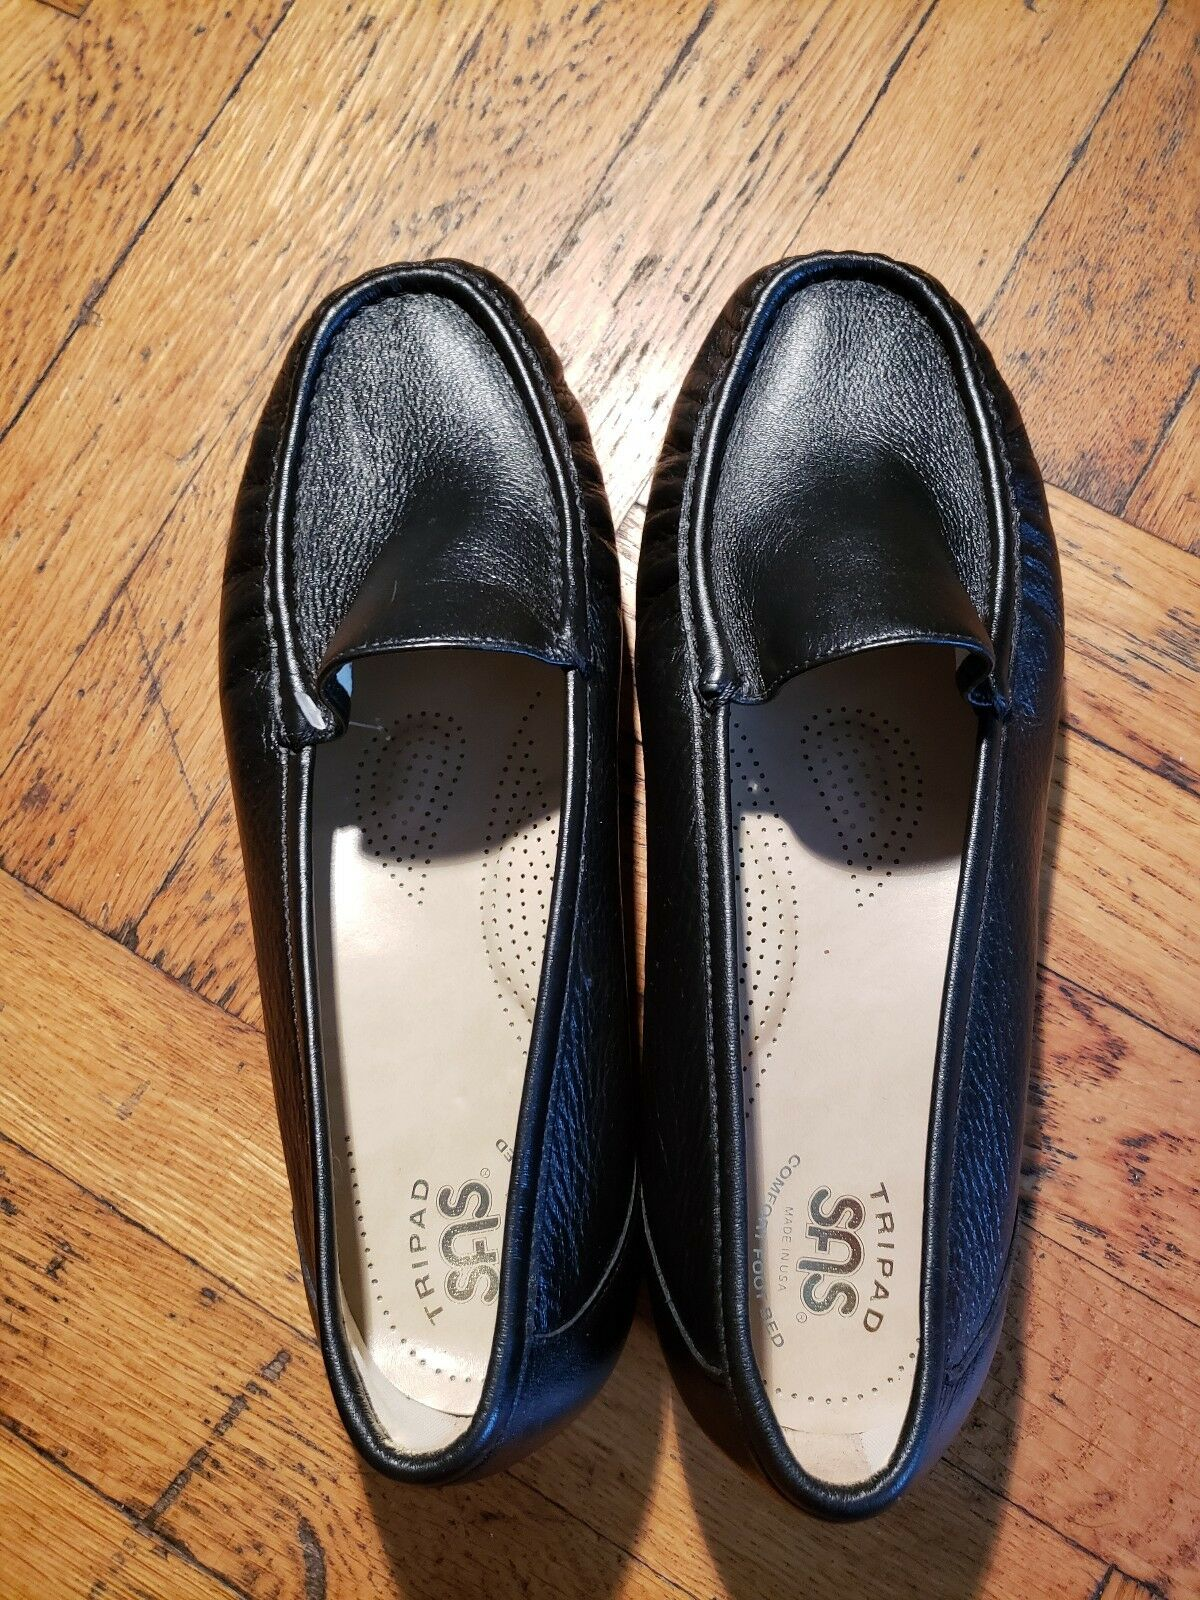 SAS Simplify Black Moccasin Size 10WW